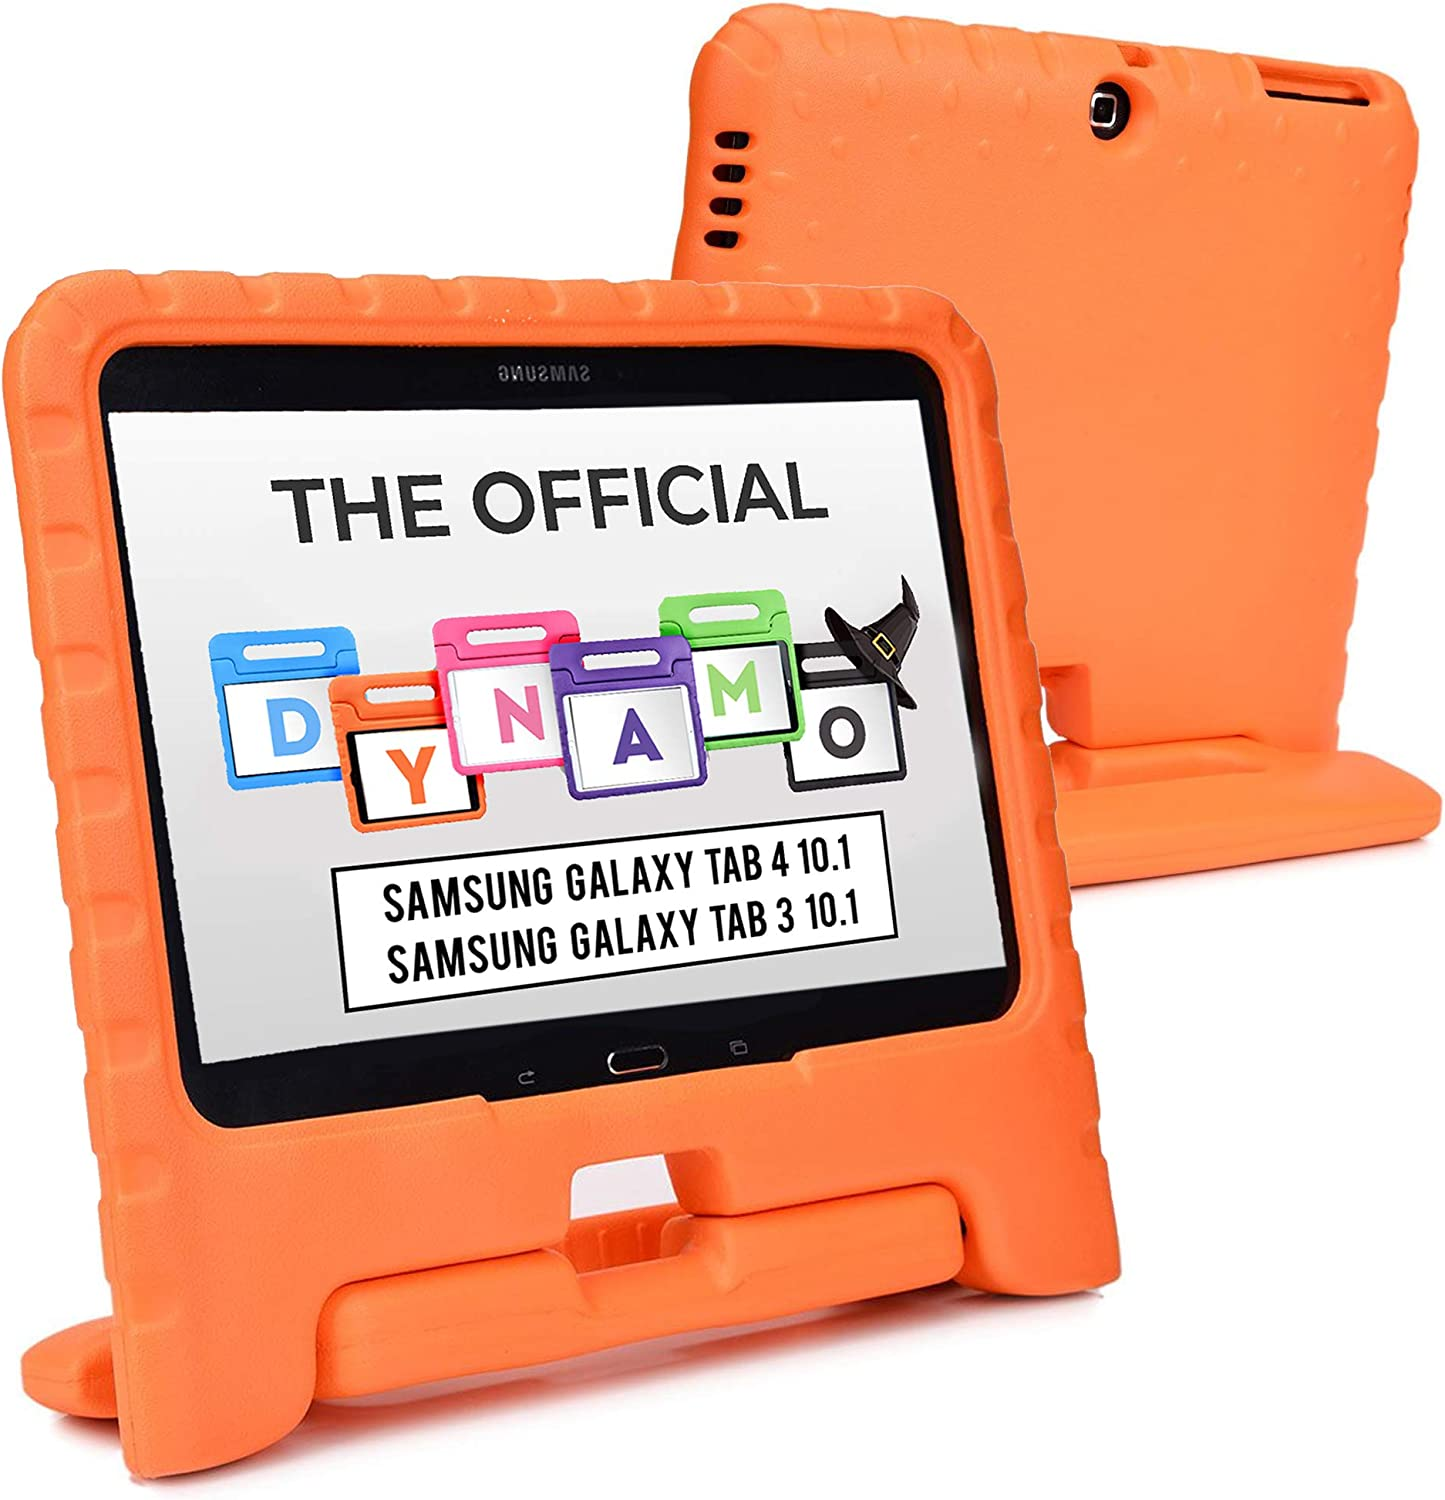 Cooper Dynamo [Rugged Kids Case] Protective Case for Samsung Tab 4 10.1, Tab 3 10.1 | Child Proof Cover, Stand, Handle | SM-T530 T531 T535 (Orange)